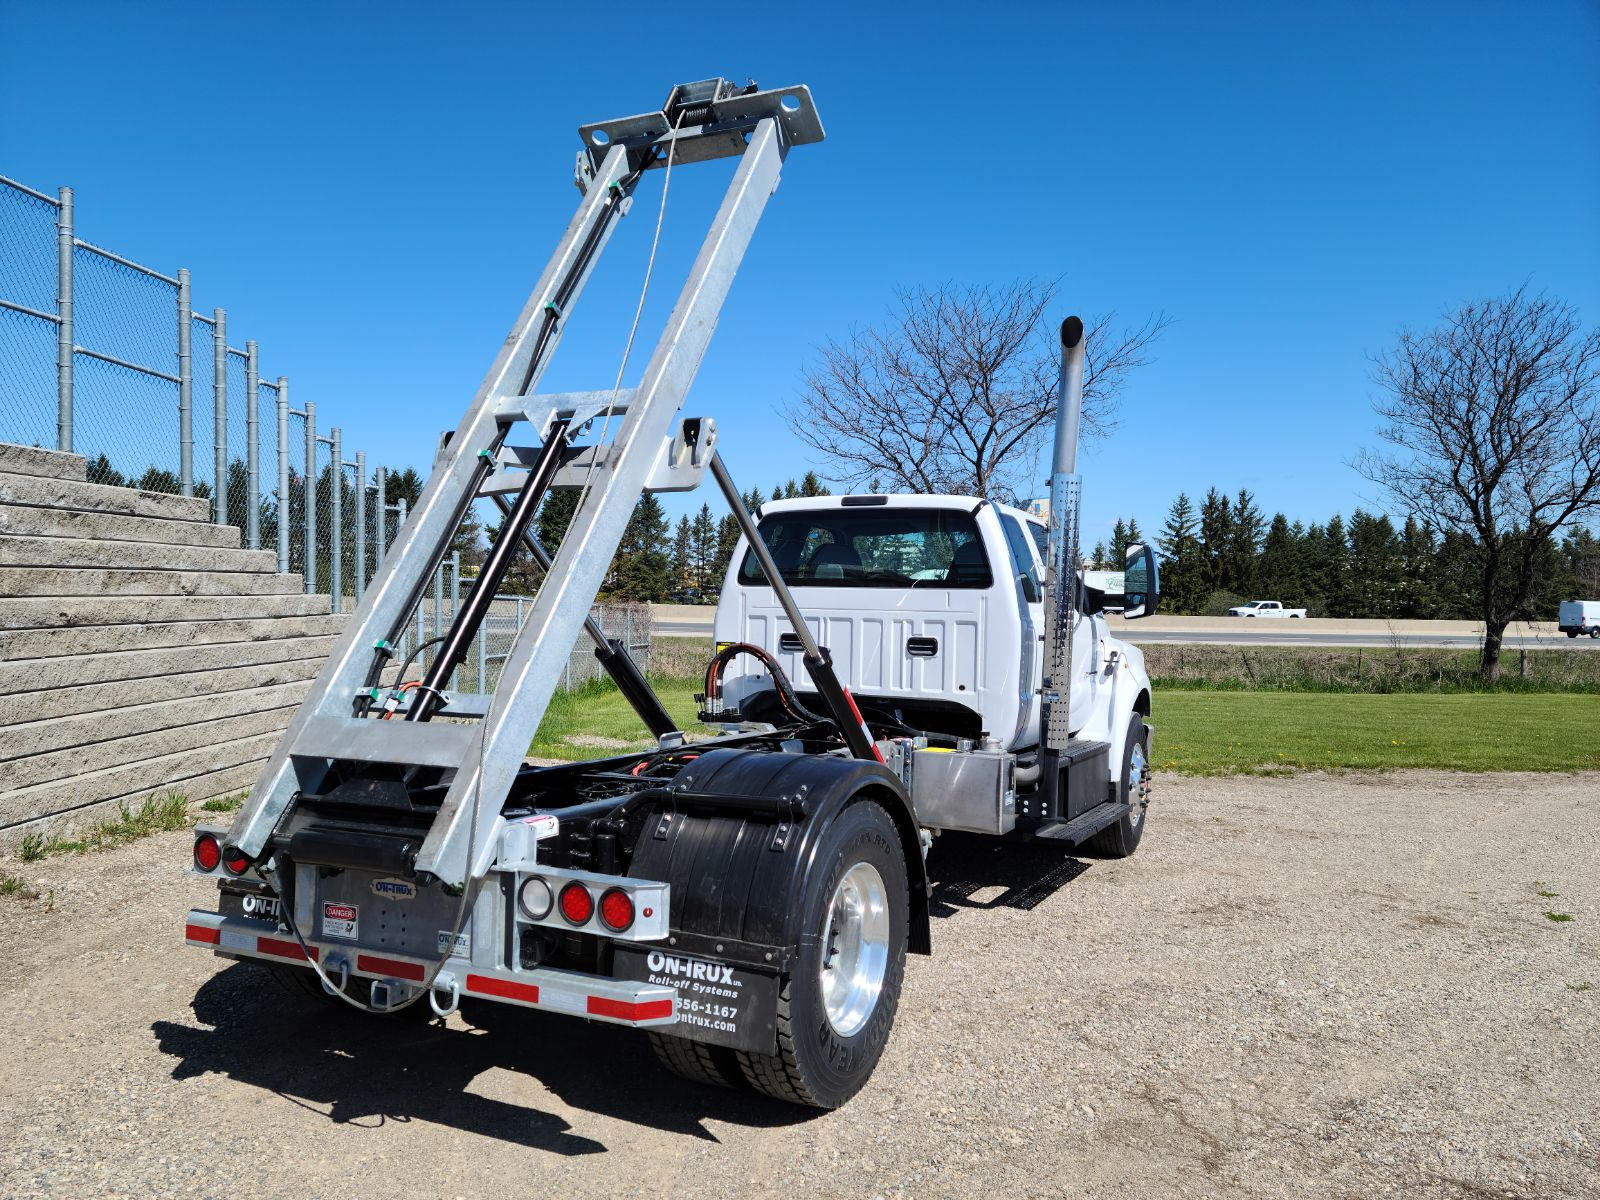 2021 Ford F750 12 On Trux System White (25)